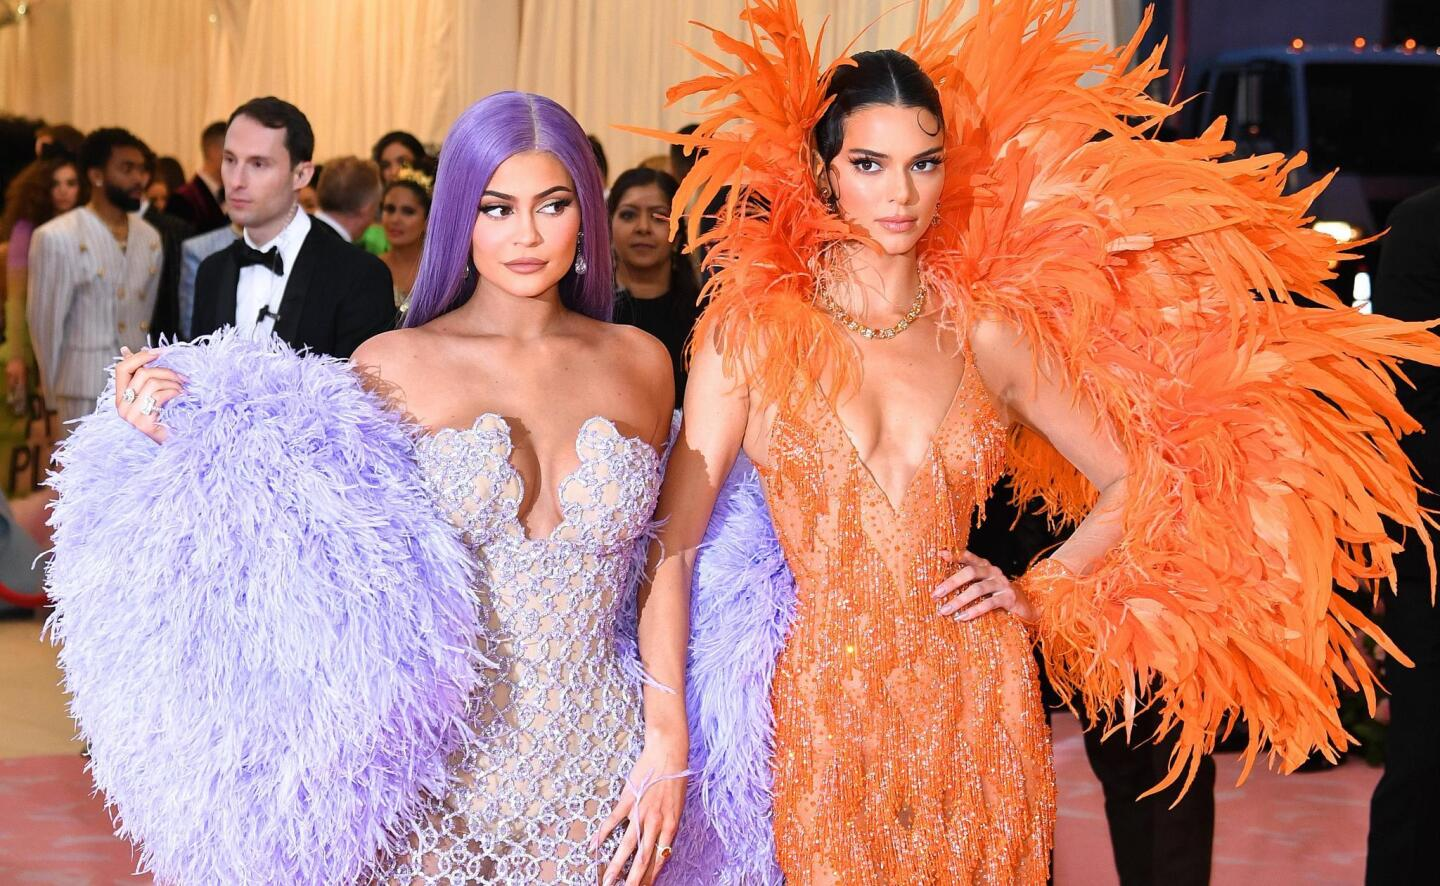 NEW YORK, NEW YORK - MAY 06: Kylie Jenner and Kendall Jenner attend The 2019 Met Gala Celebrating Camp: Notes on Fashion at Metropolitan Museum of Art on May 06, 2019 in New York City. (Photo by Dimitrios Kambouris/Getty Images for The Met Museum/Vogue)